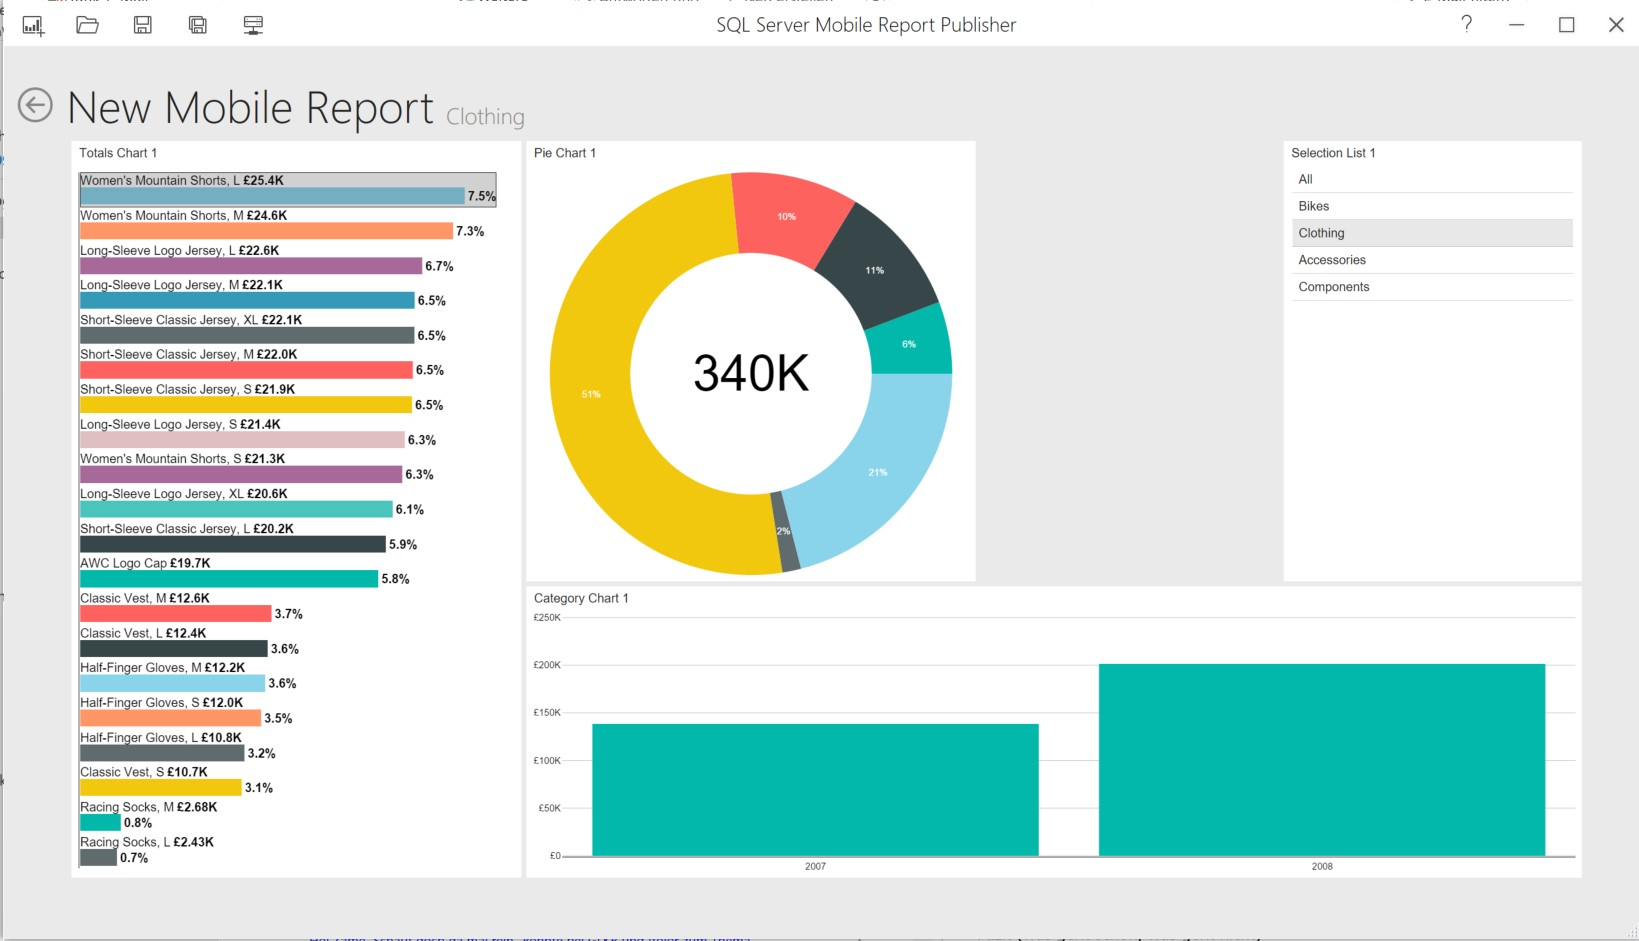 Abbildung 10: Preview des Dashboards in SQL Mobile Report Publisher (zum Vergrössern klicken)